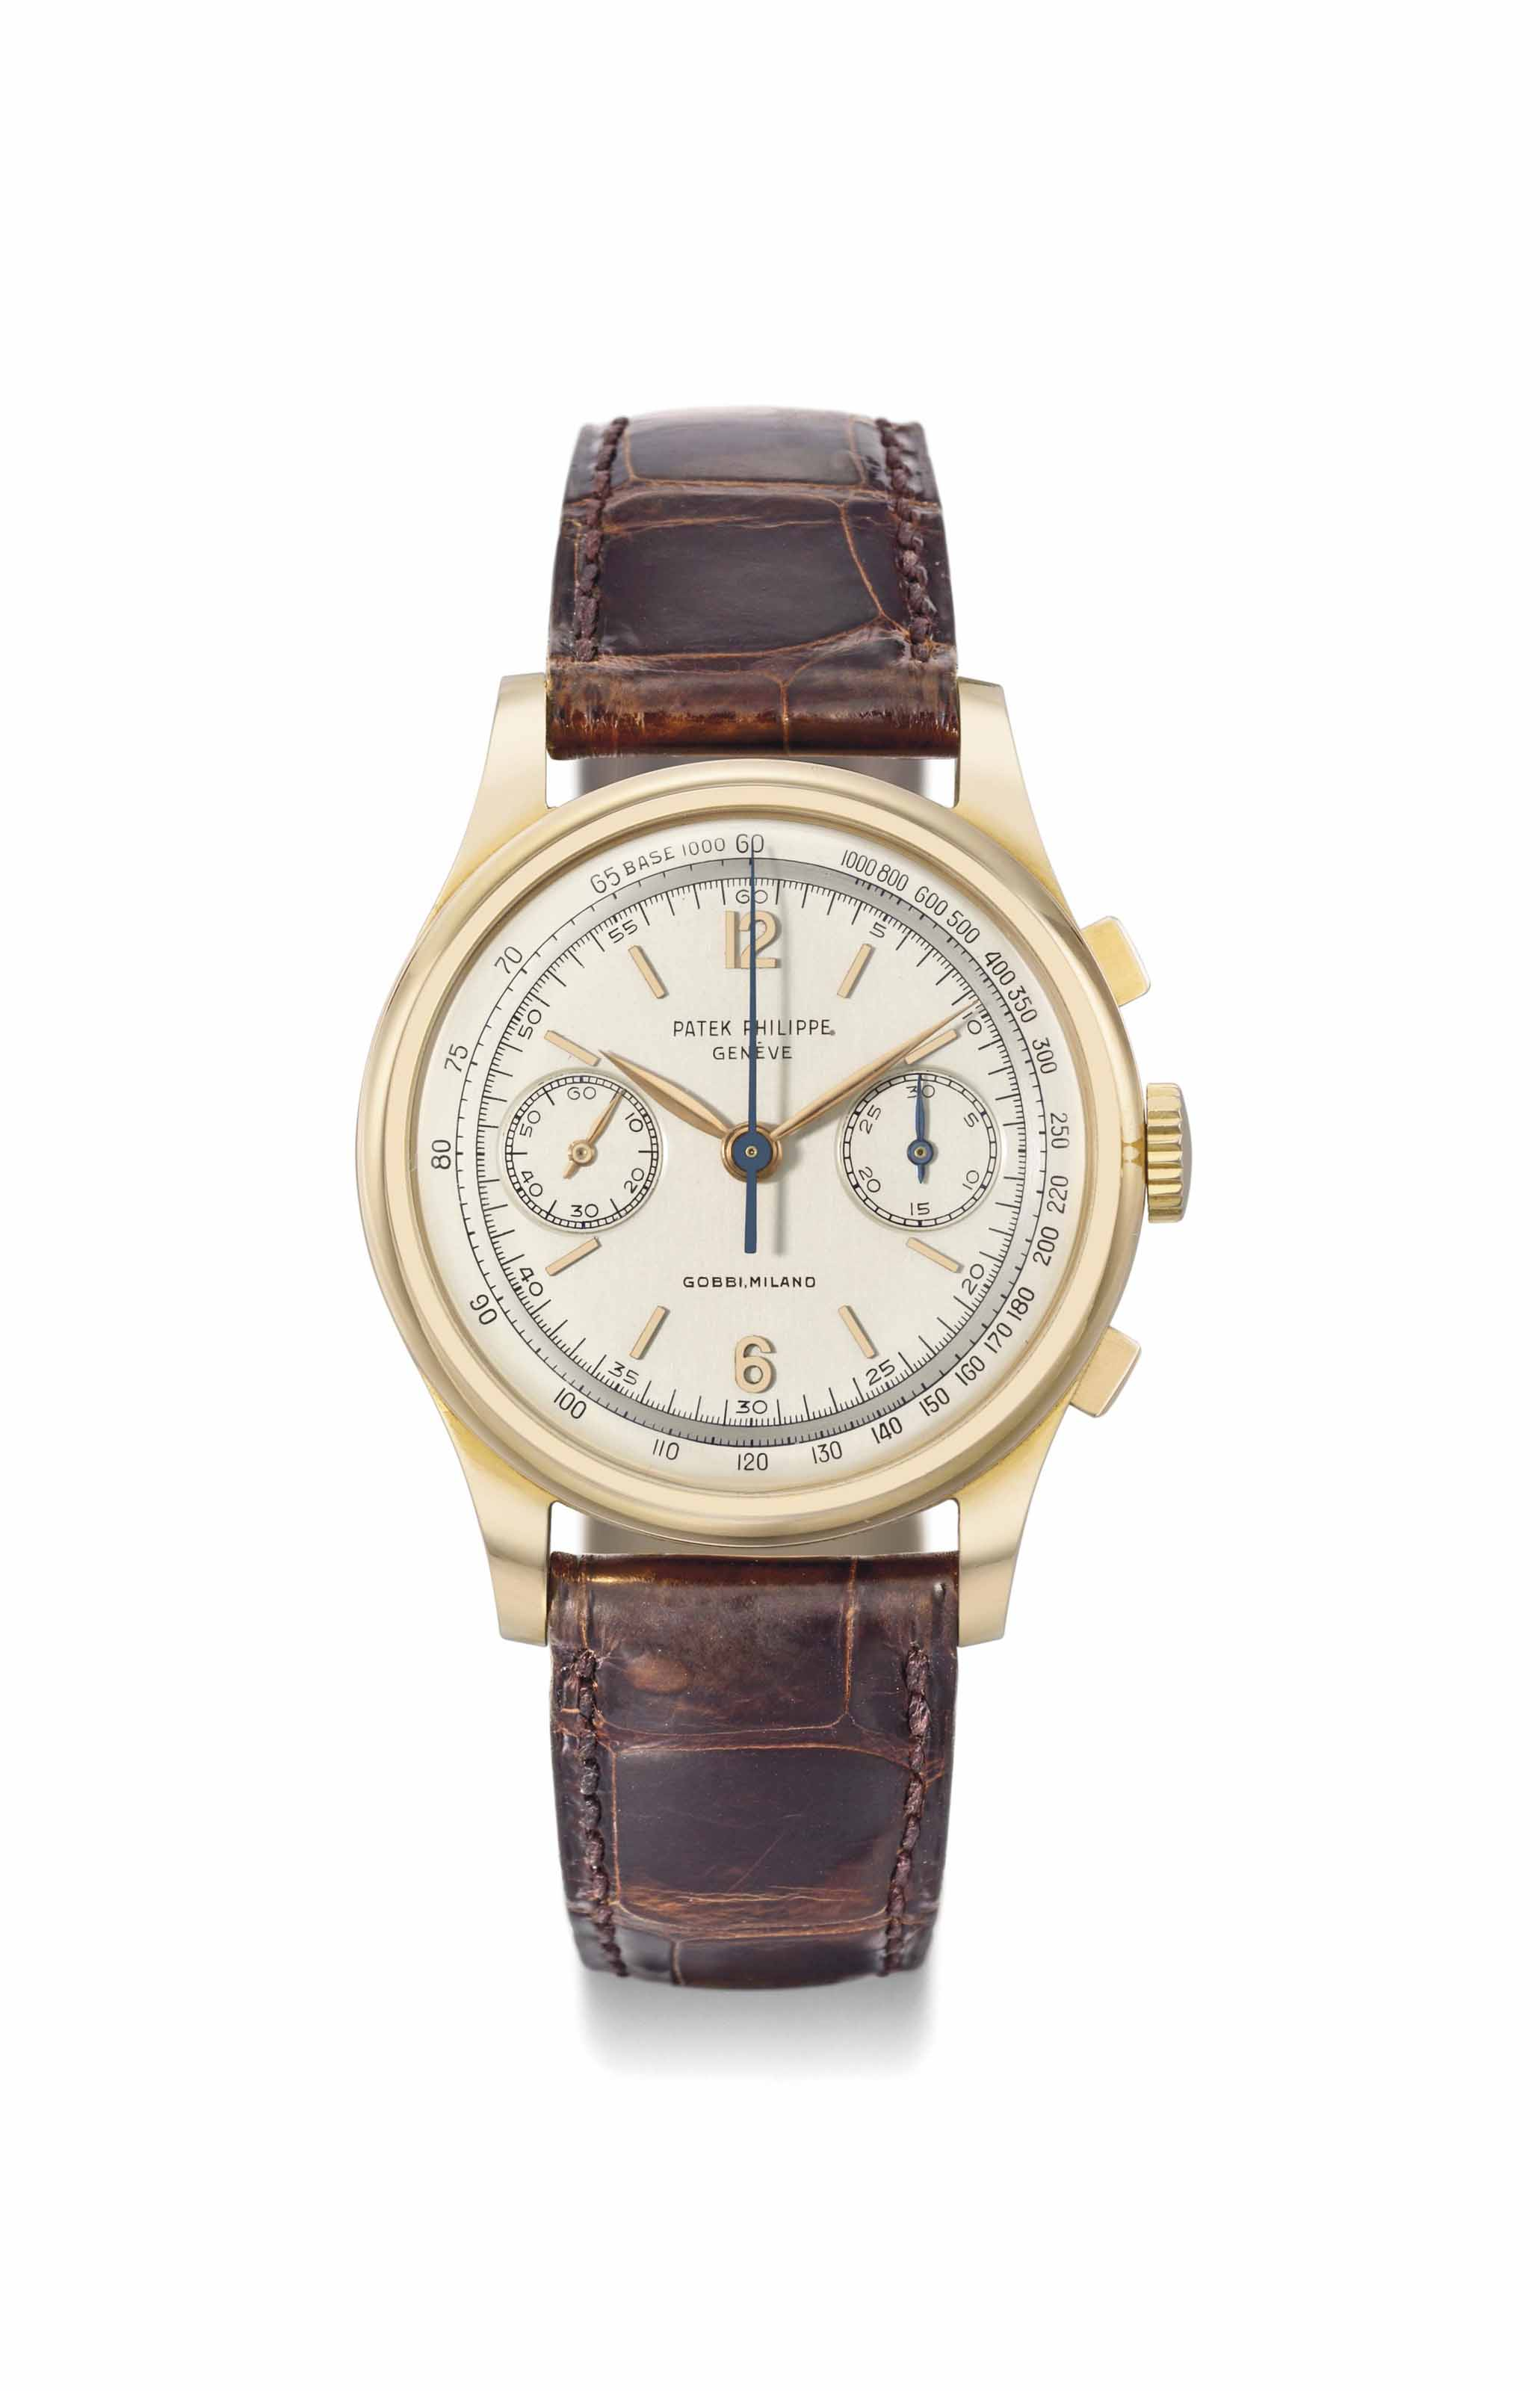 Patek Philippe. An extremely fine, rare and large 18K pink gold chronograph wristwatch with two-tone silvered dial